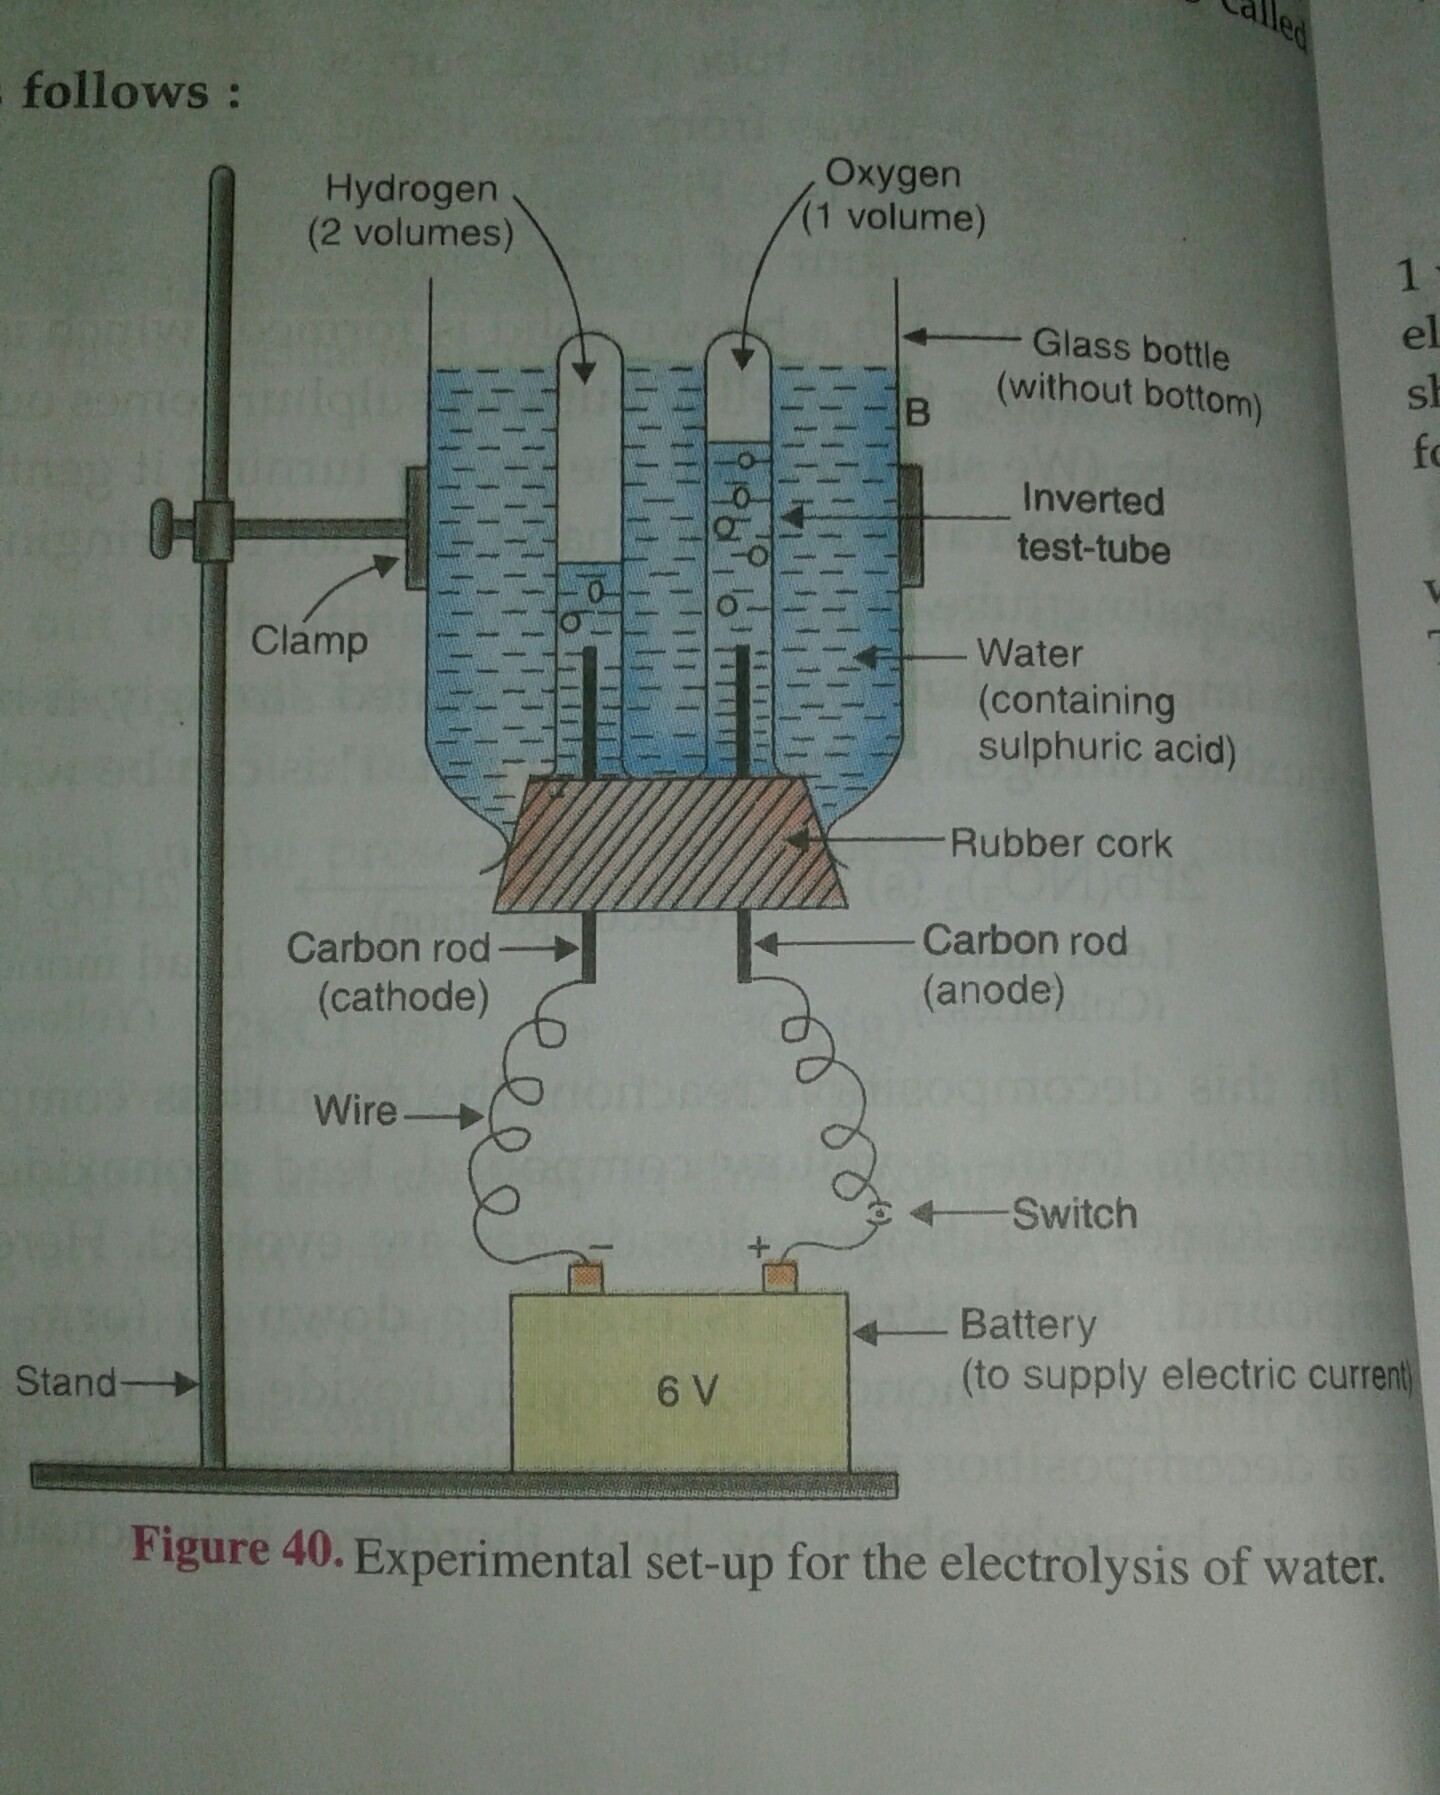 Draw The Diagram For Electrolysis Of Water And Label It